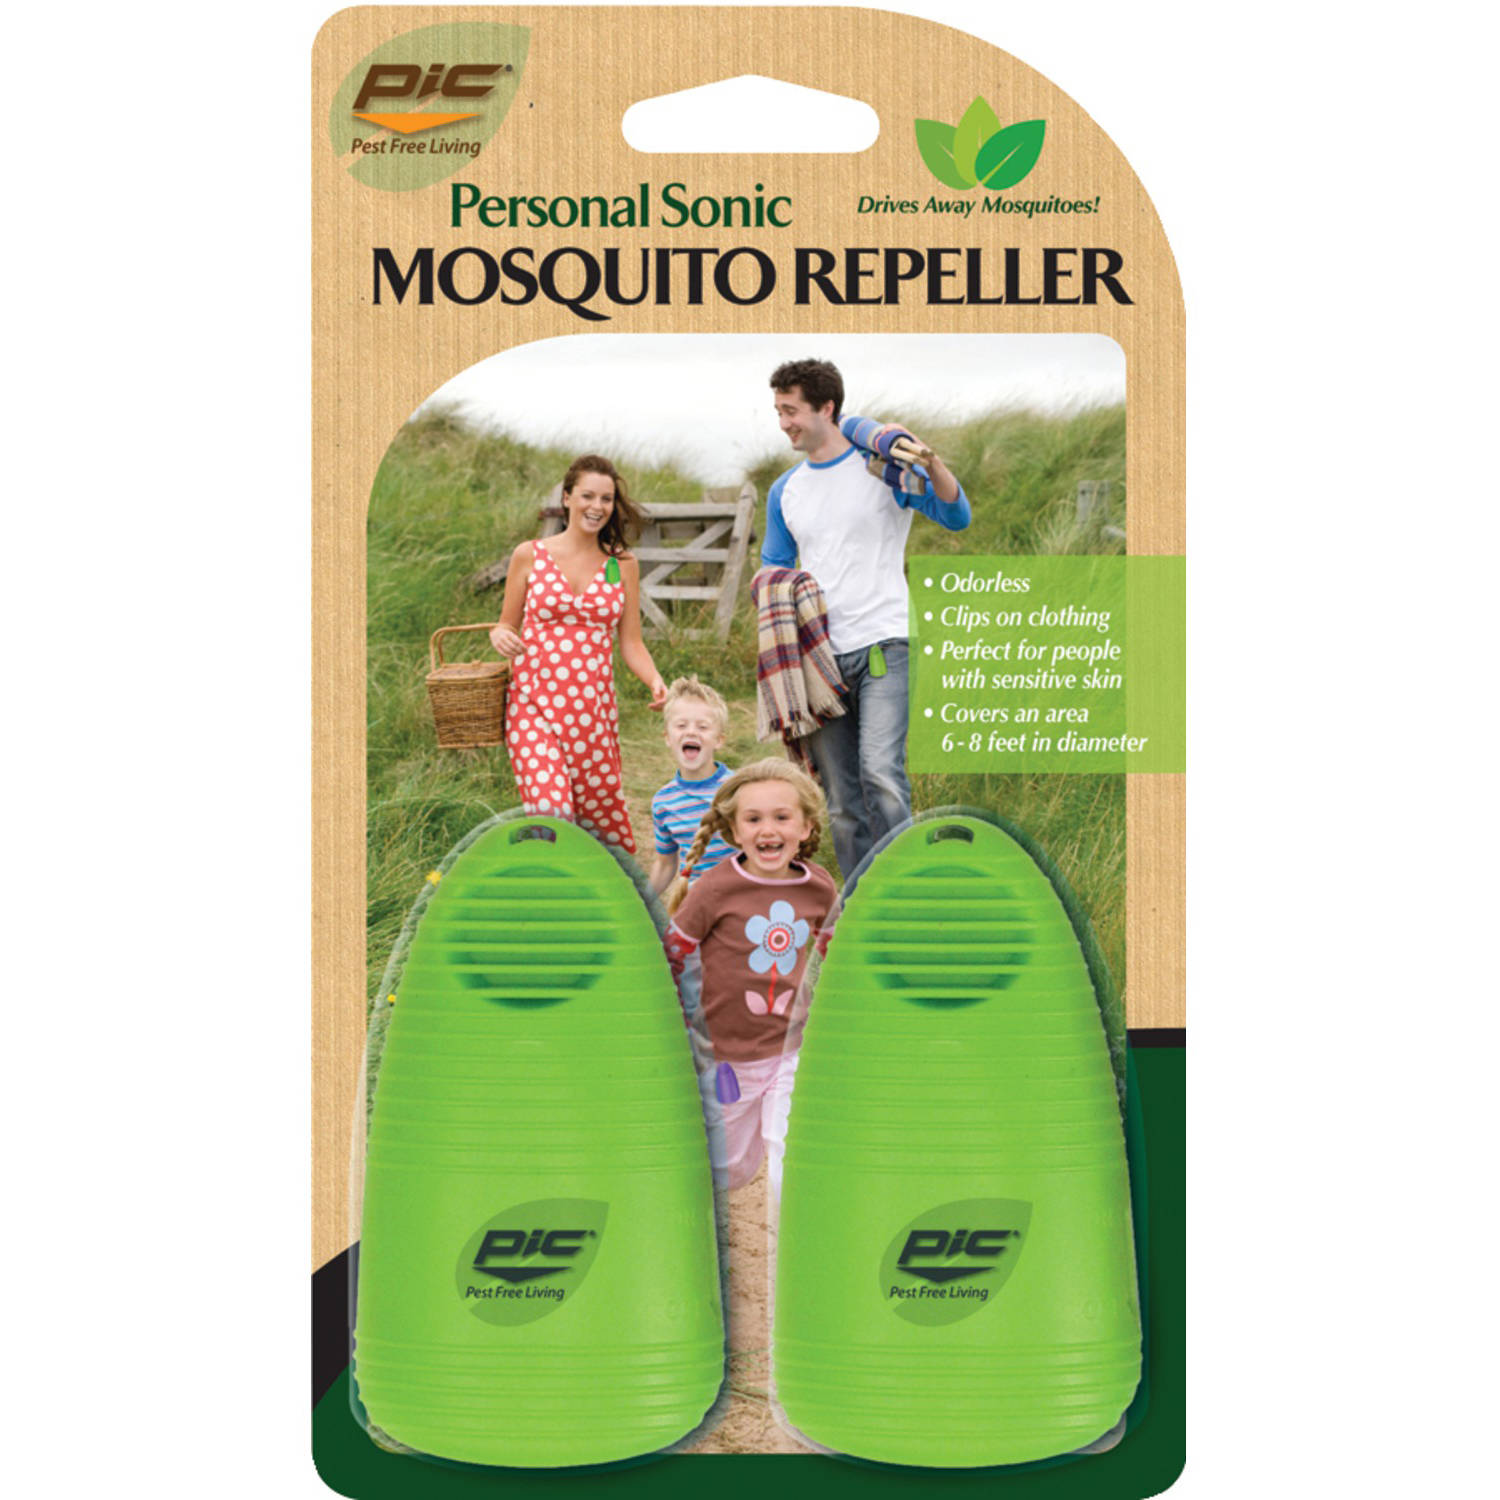 Pic Pmr-2 Personal Sonic Mosquito Repellent